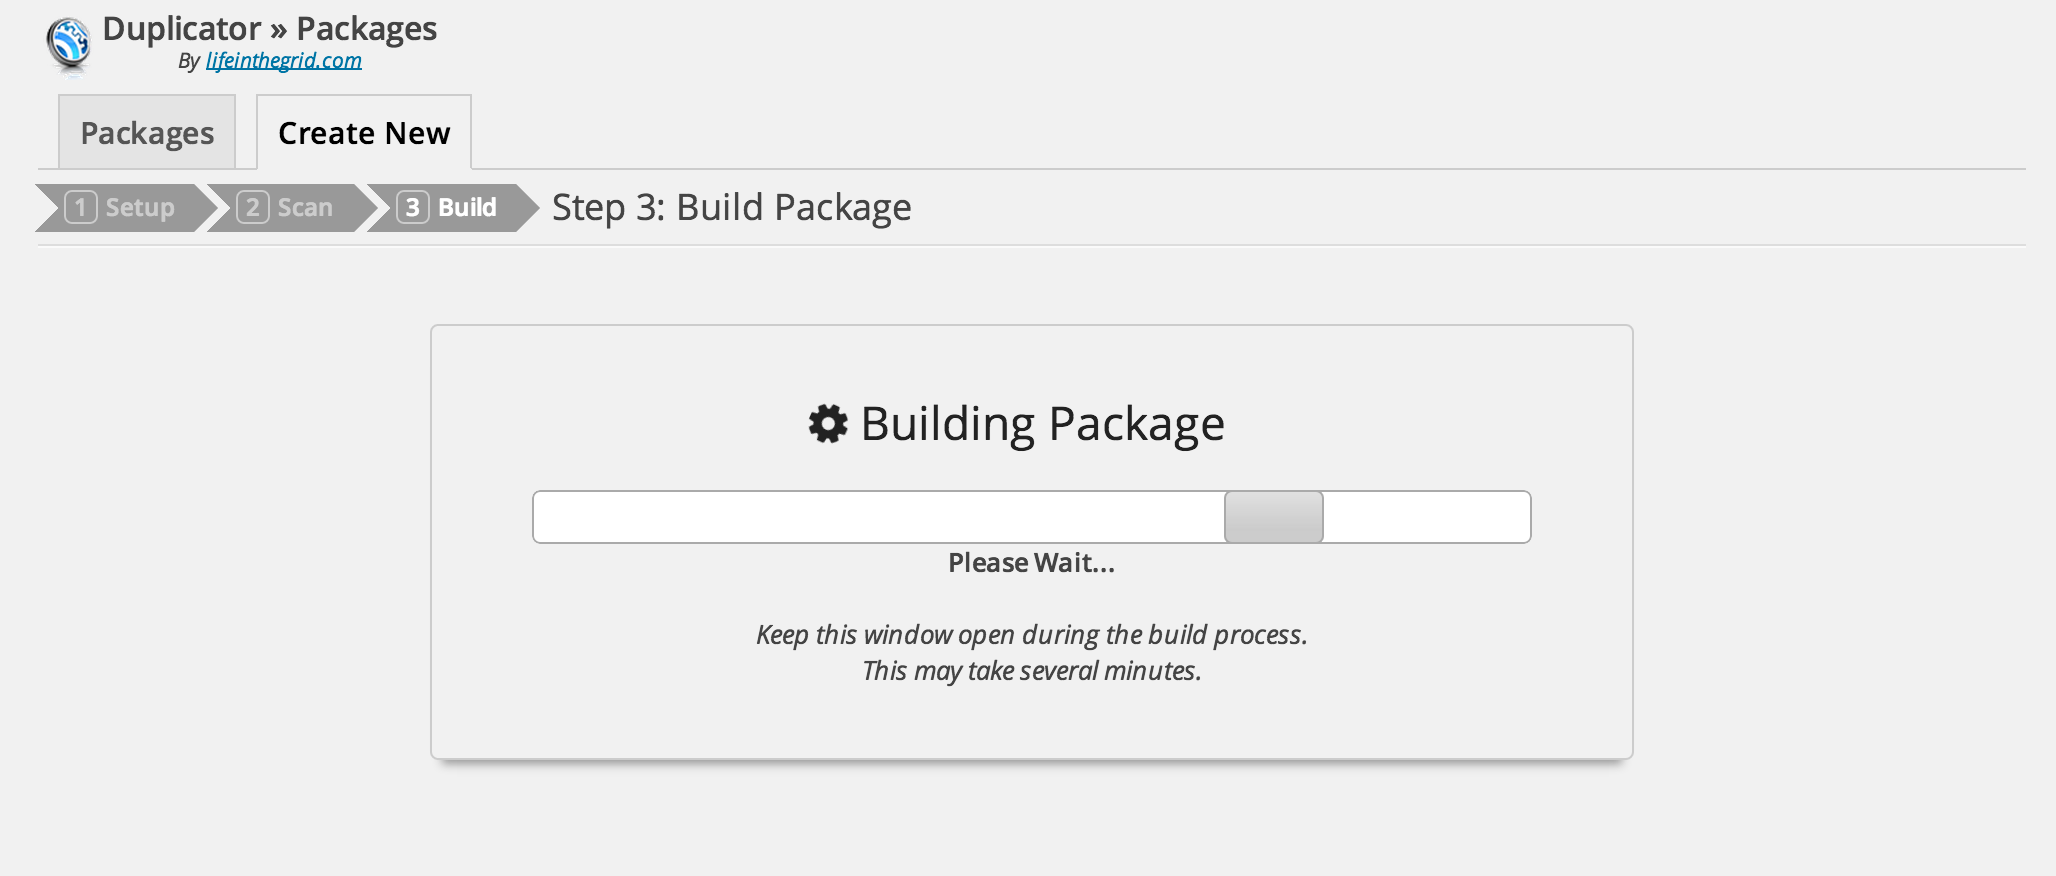 Wait for Duplicator to build the Package